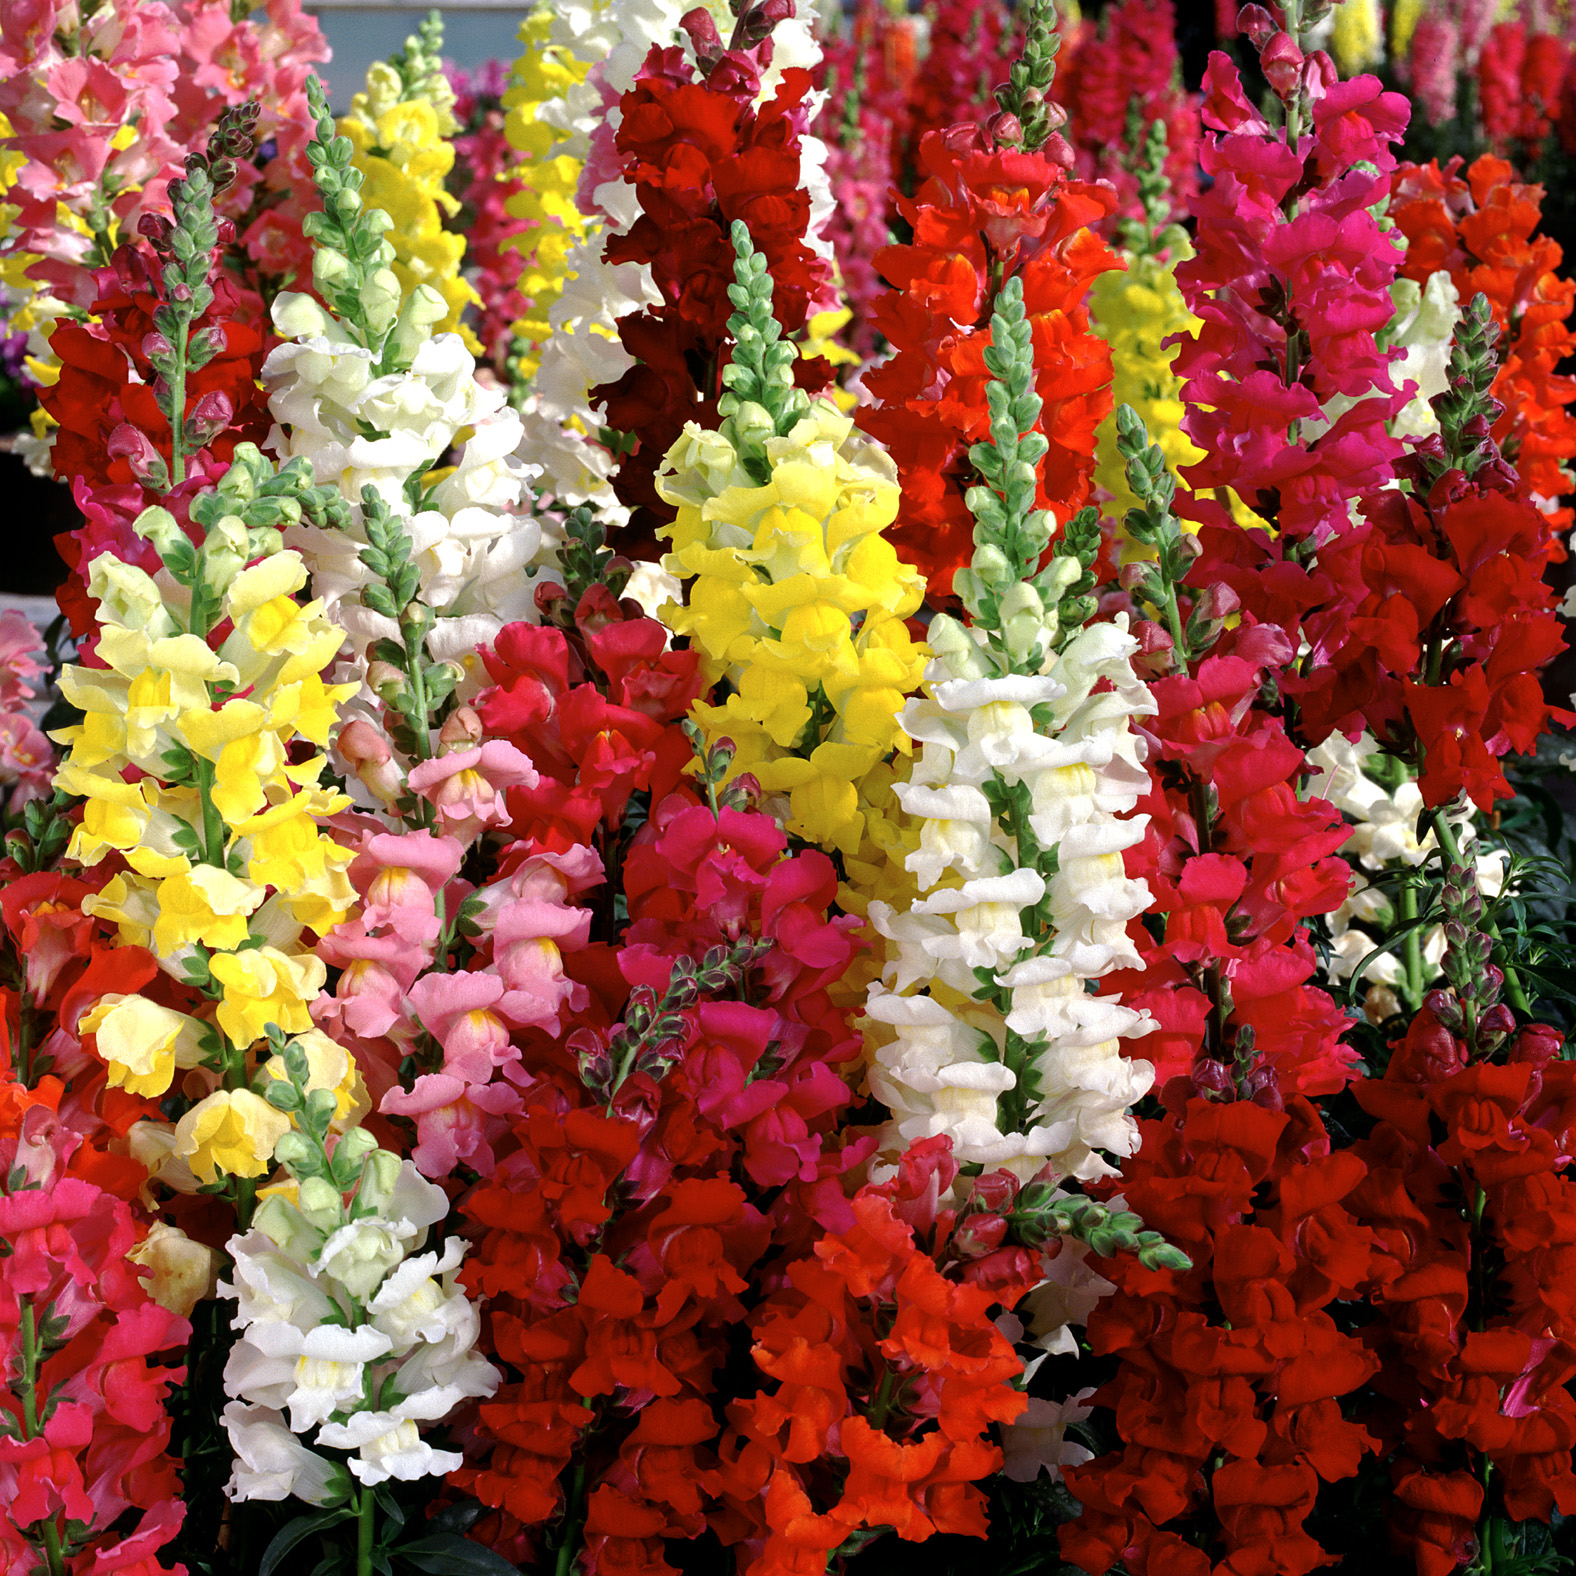 http://www.primrosecottagenursery.co.uk/wp-content/uploads/2010/04/Antirrhinum-Liberty-Classic-Mix.jpg